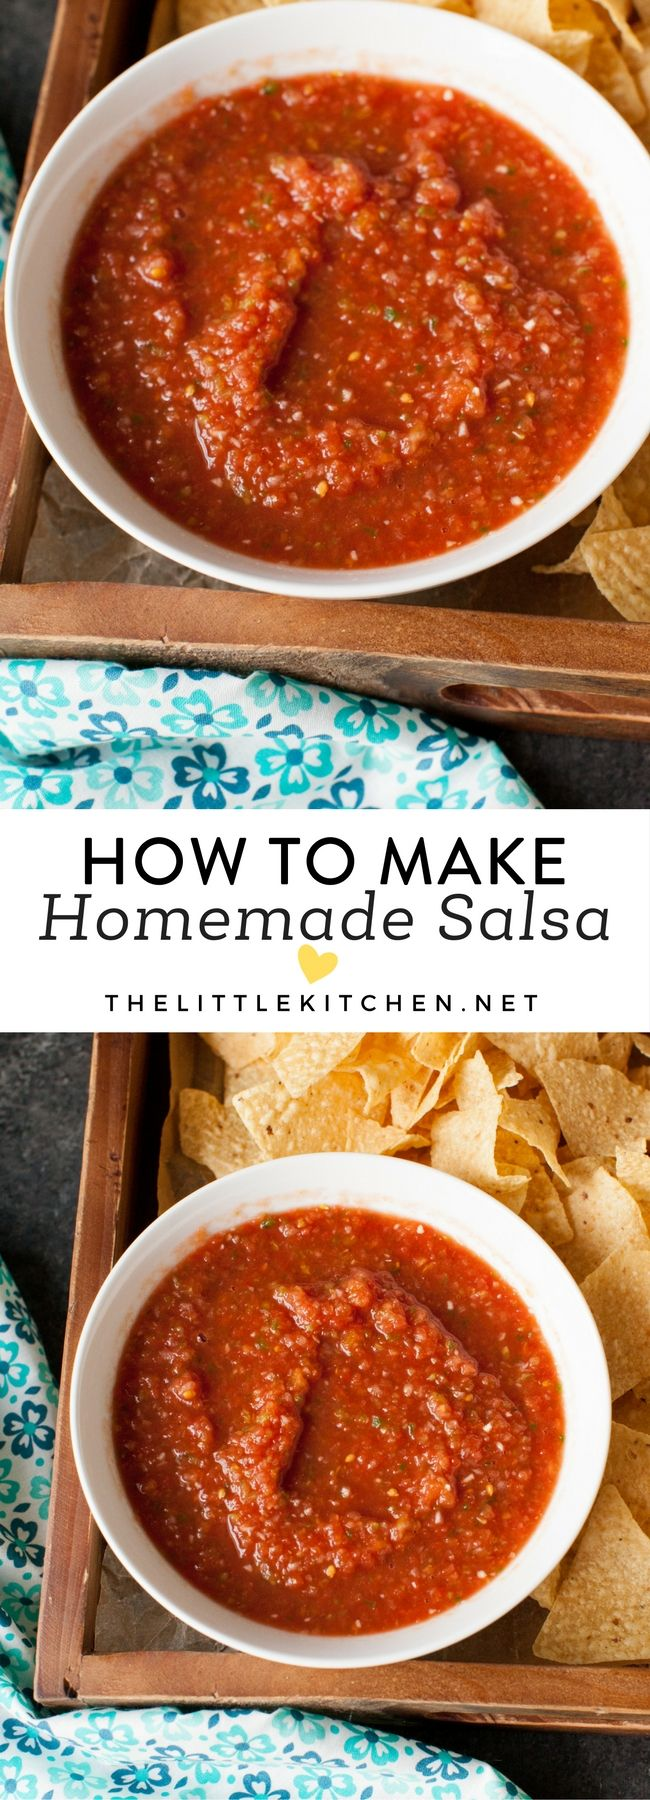 How to make salsa from thelittlekitchen.net